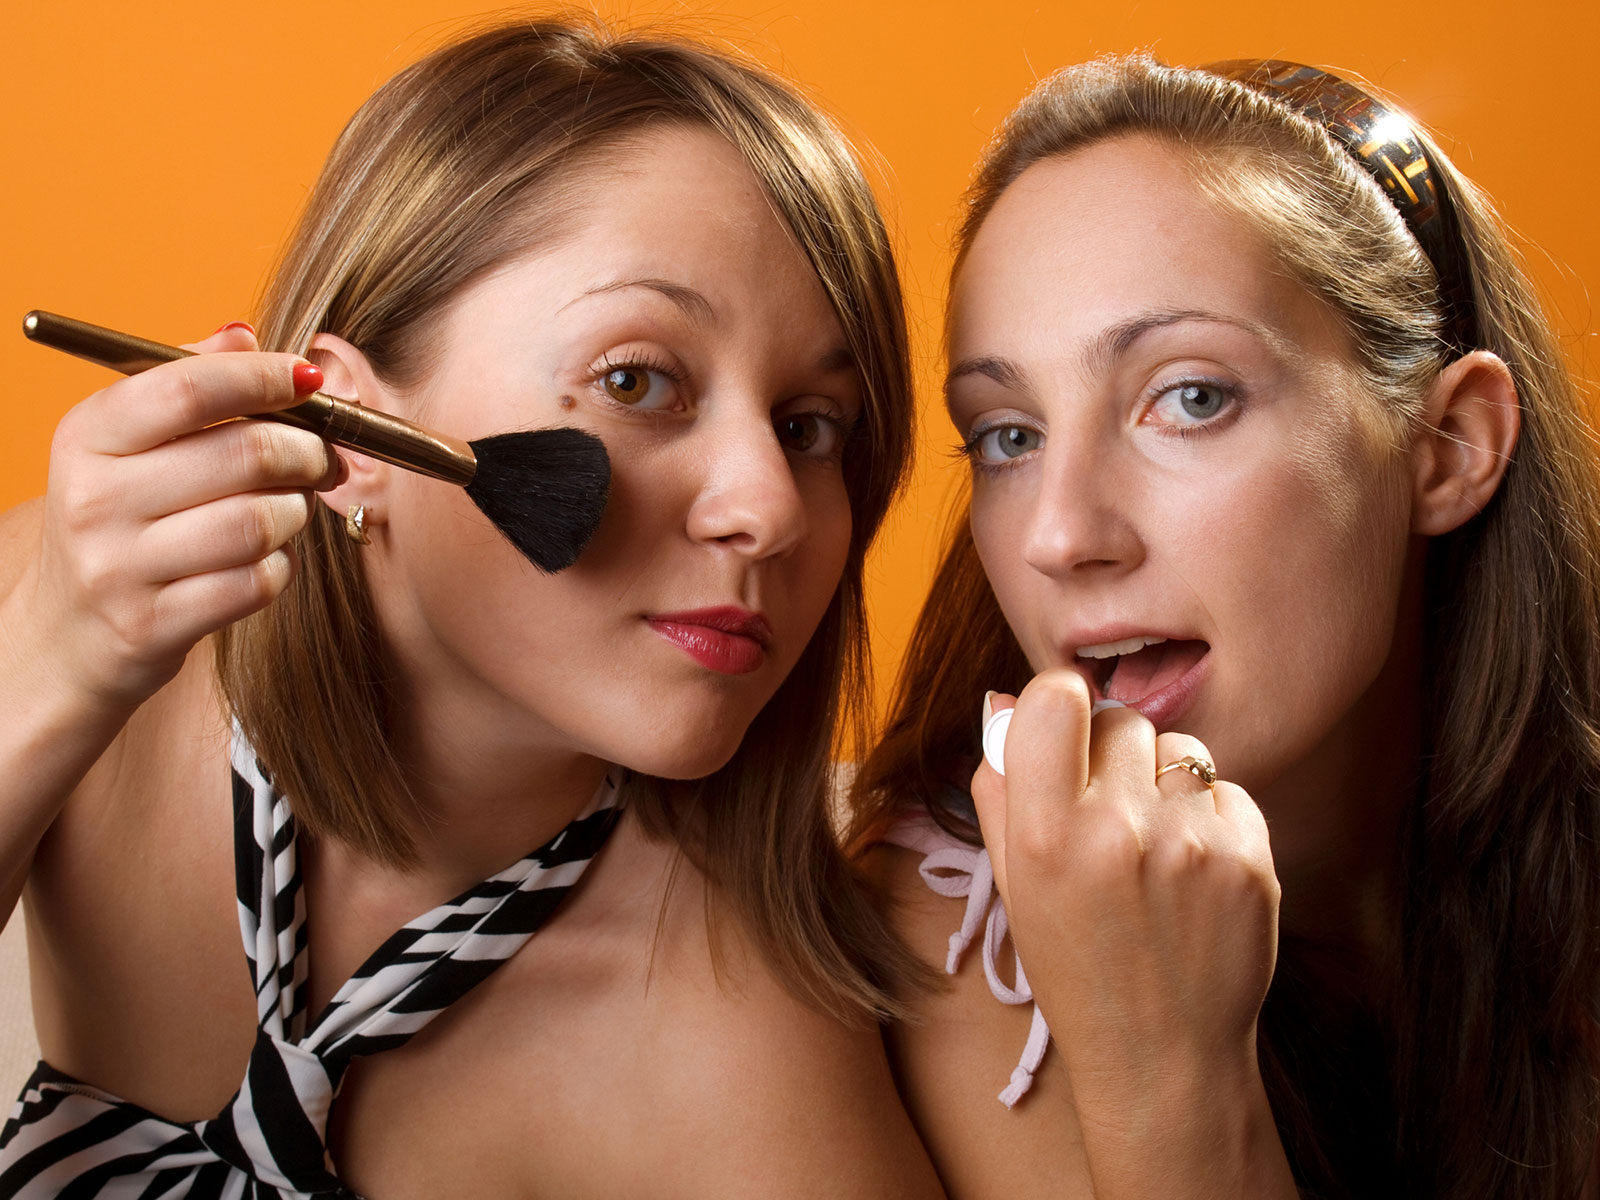 girls-applying-makeup.jpg